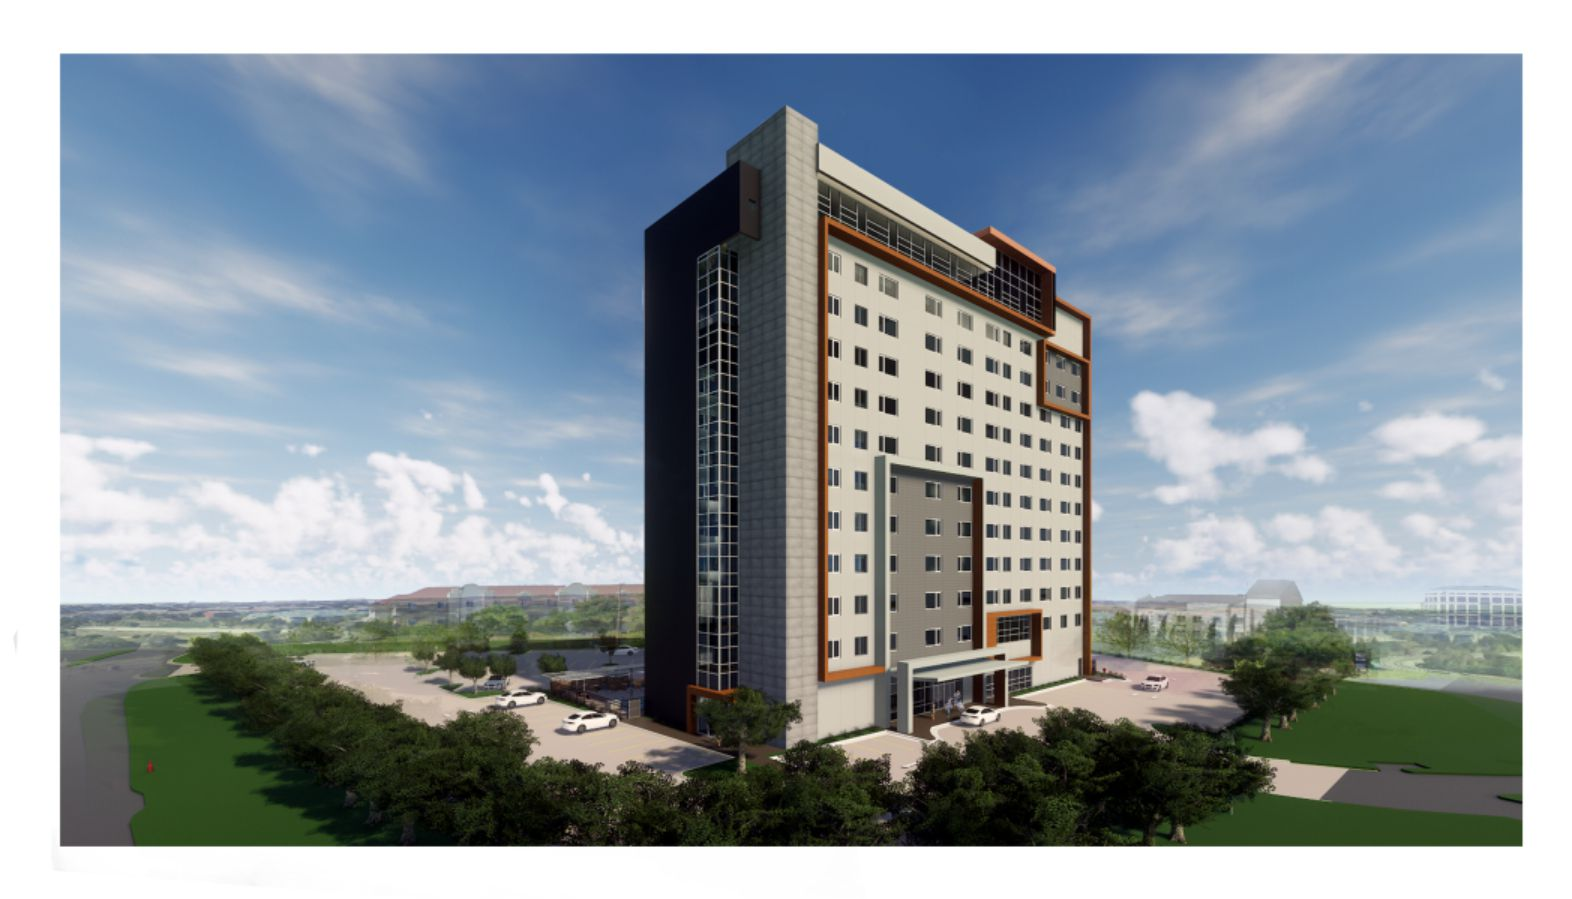 The new Element Hotel is being built on S.H. 114 in Irving.